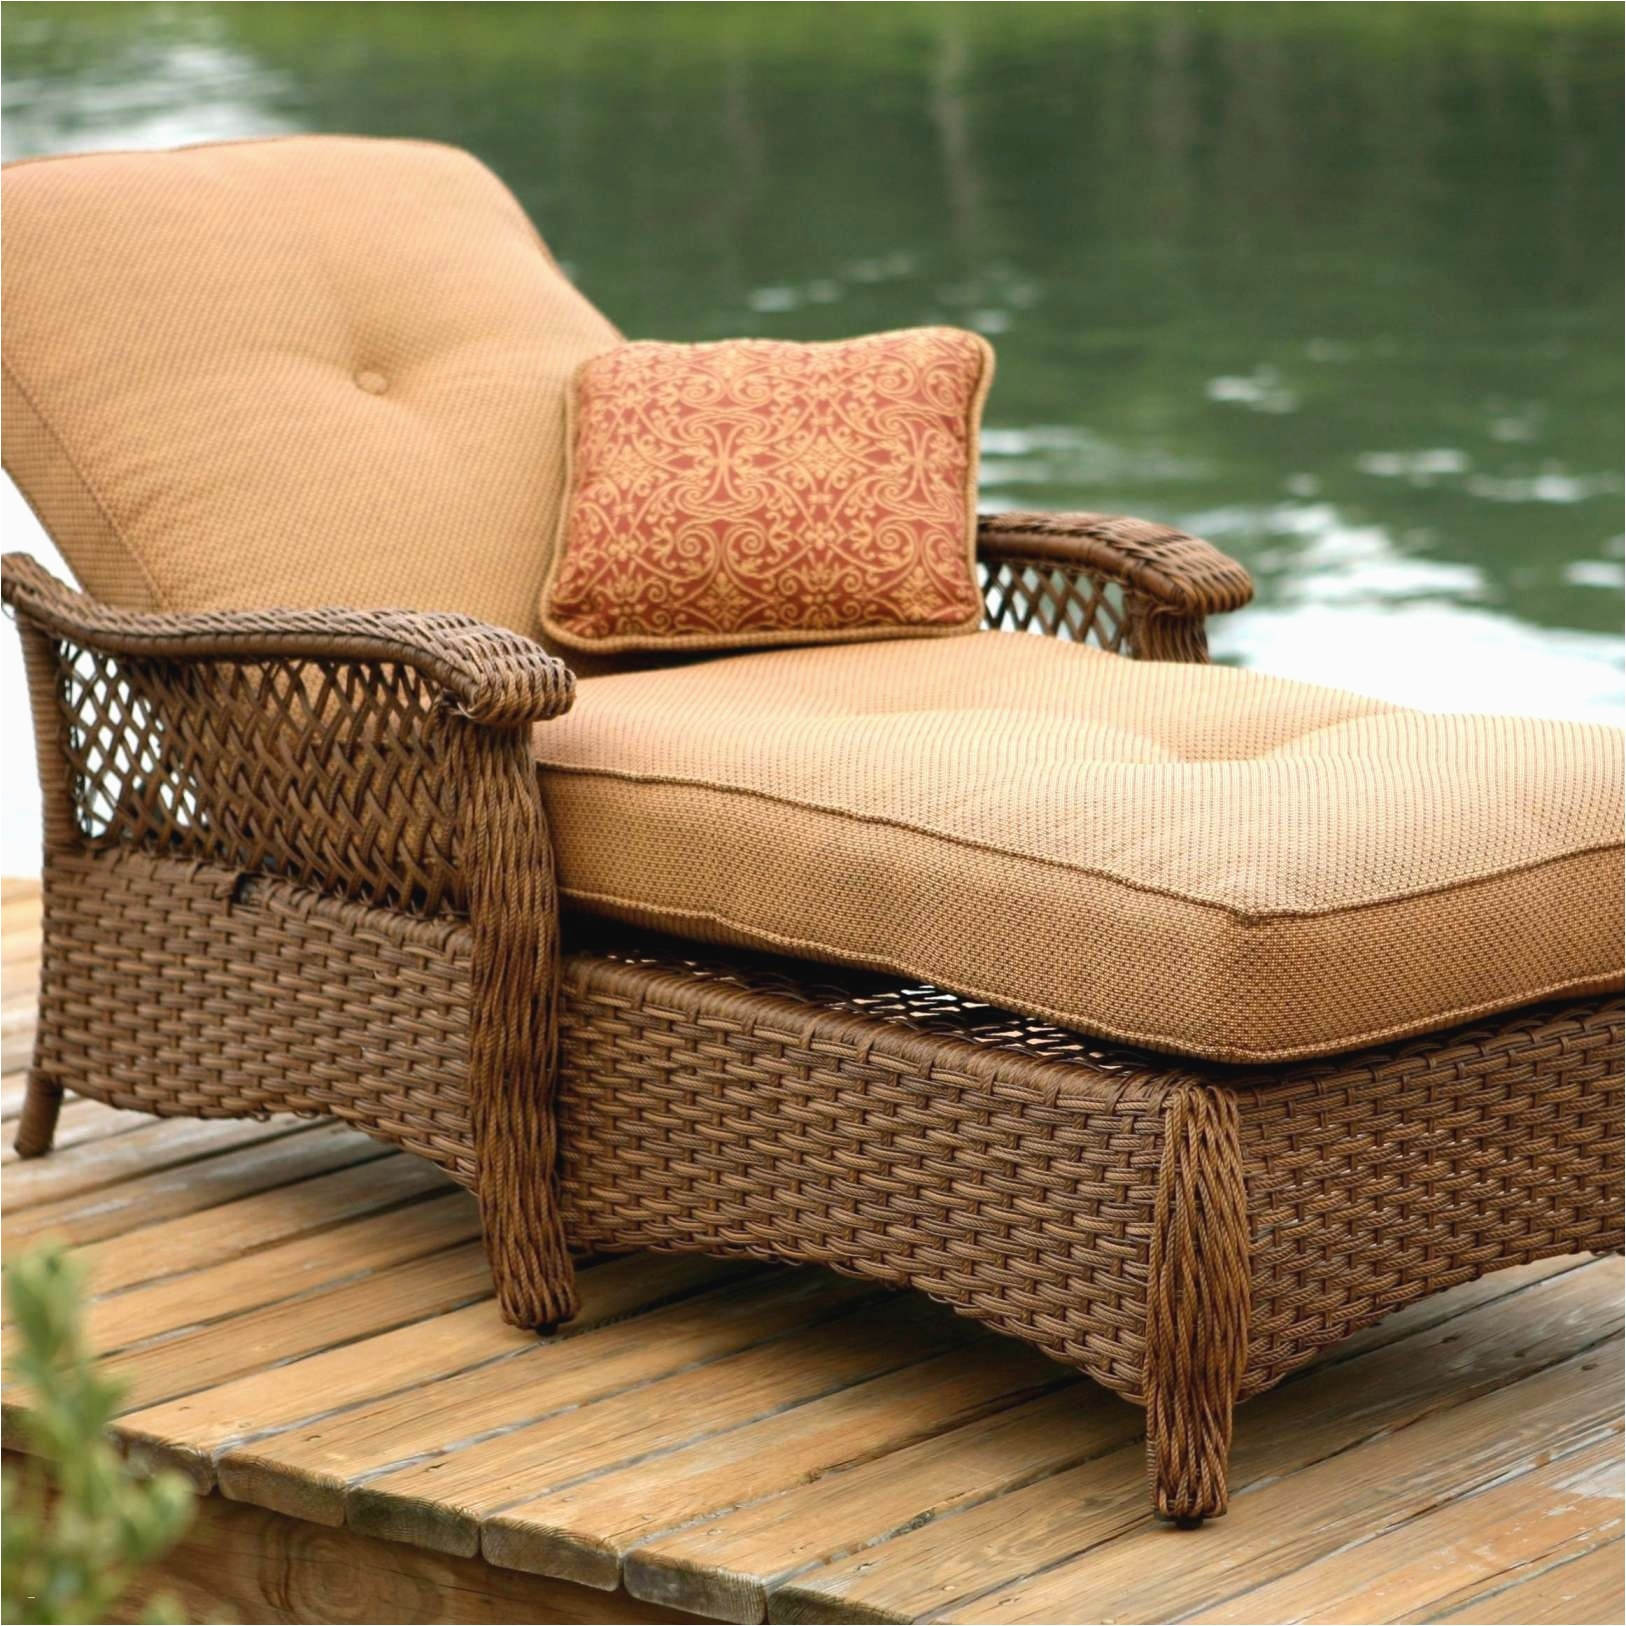 patio furniture couch beautiful designer outdoor furniture luxury exciting wicker outdoor sofa 0d